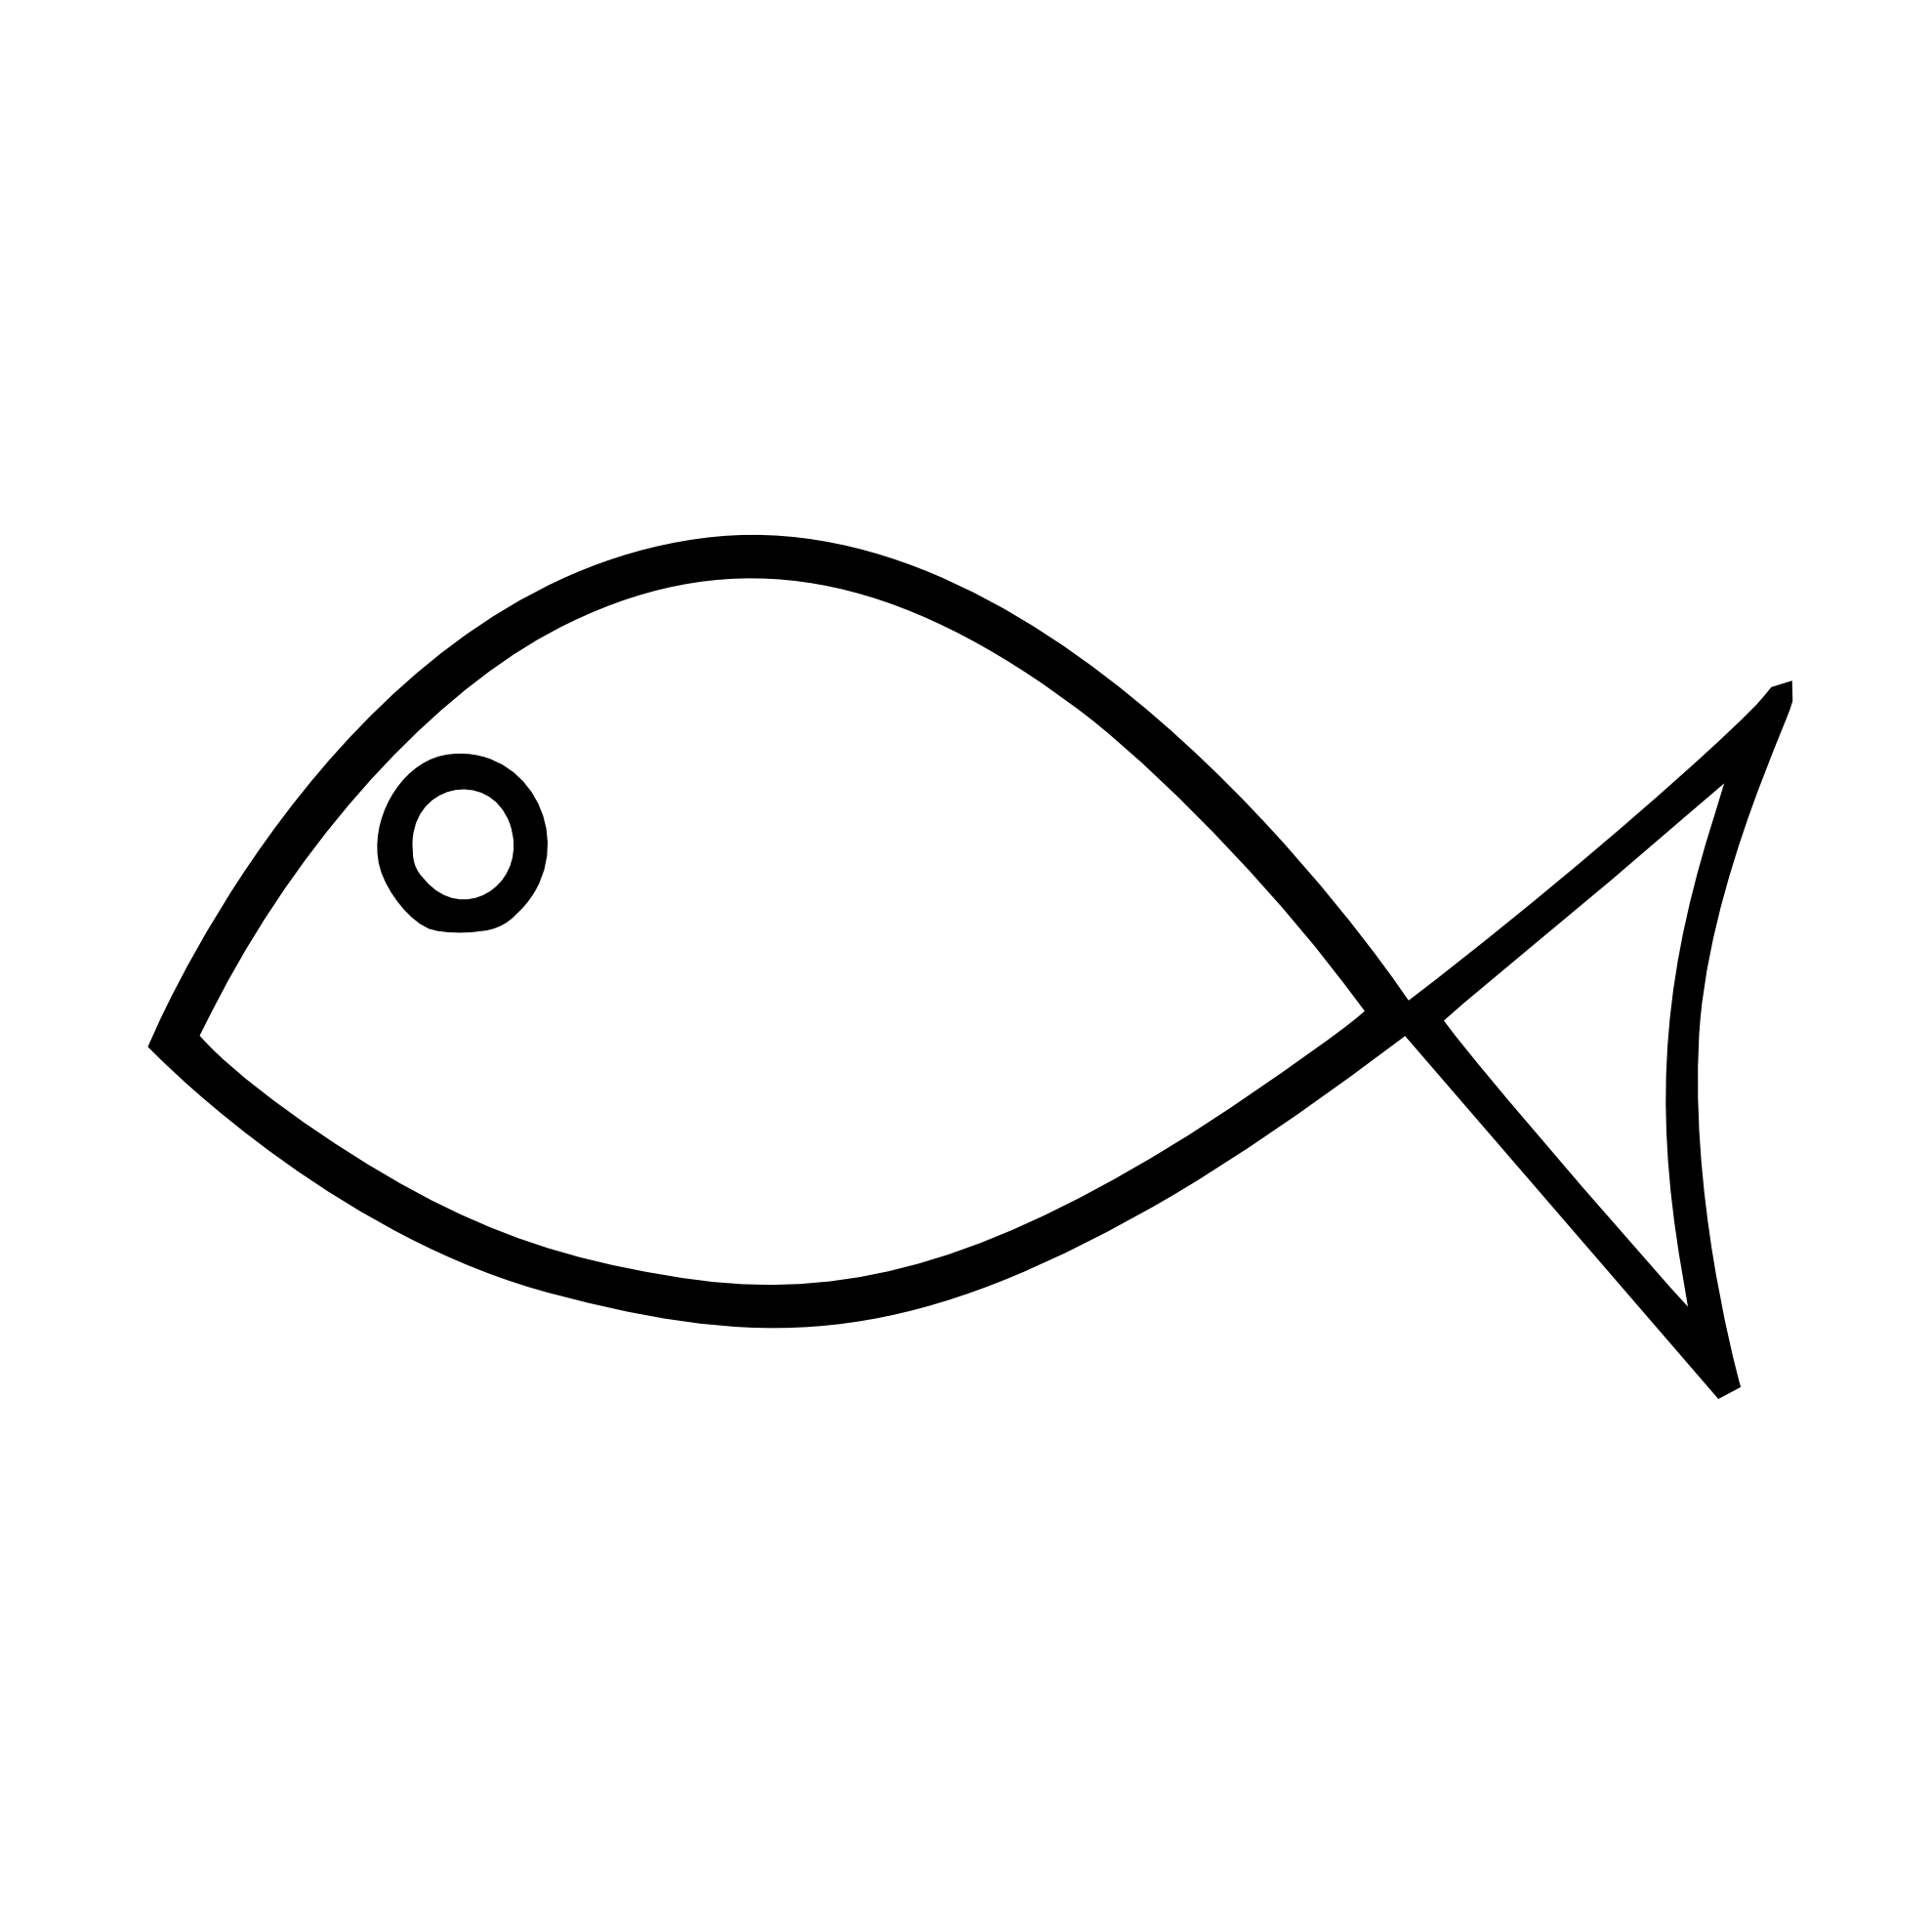 Cartoon fish clipart black and white transparent background